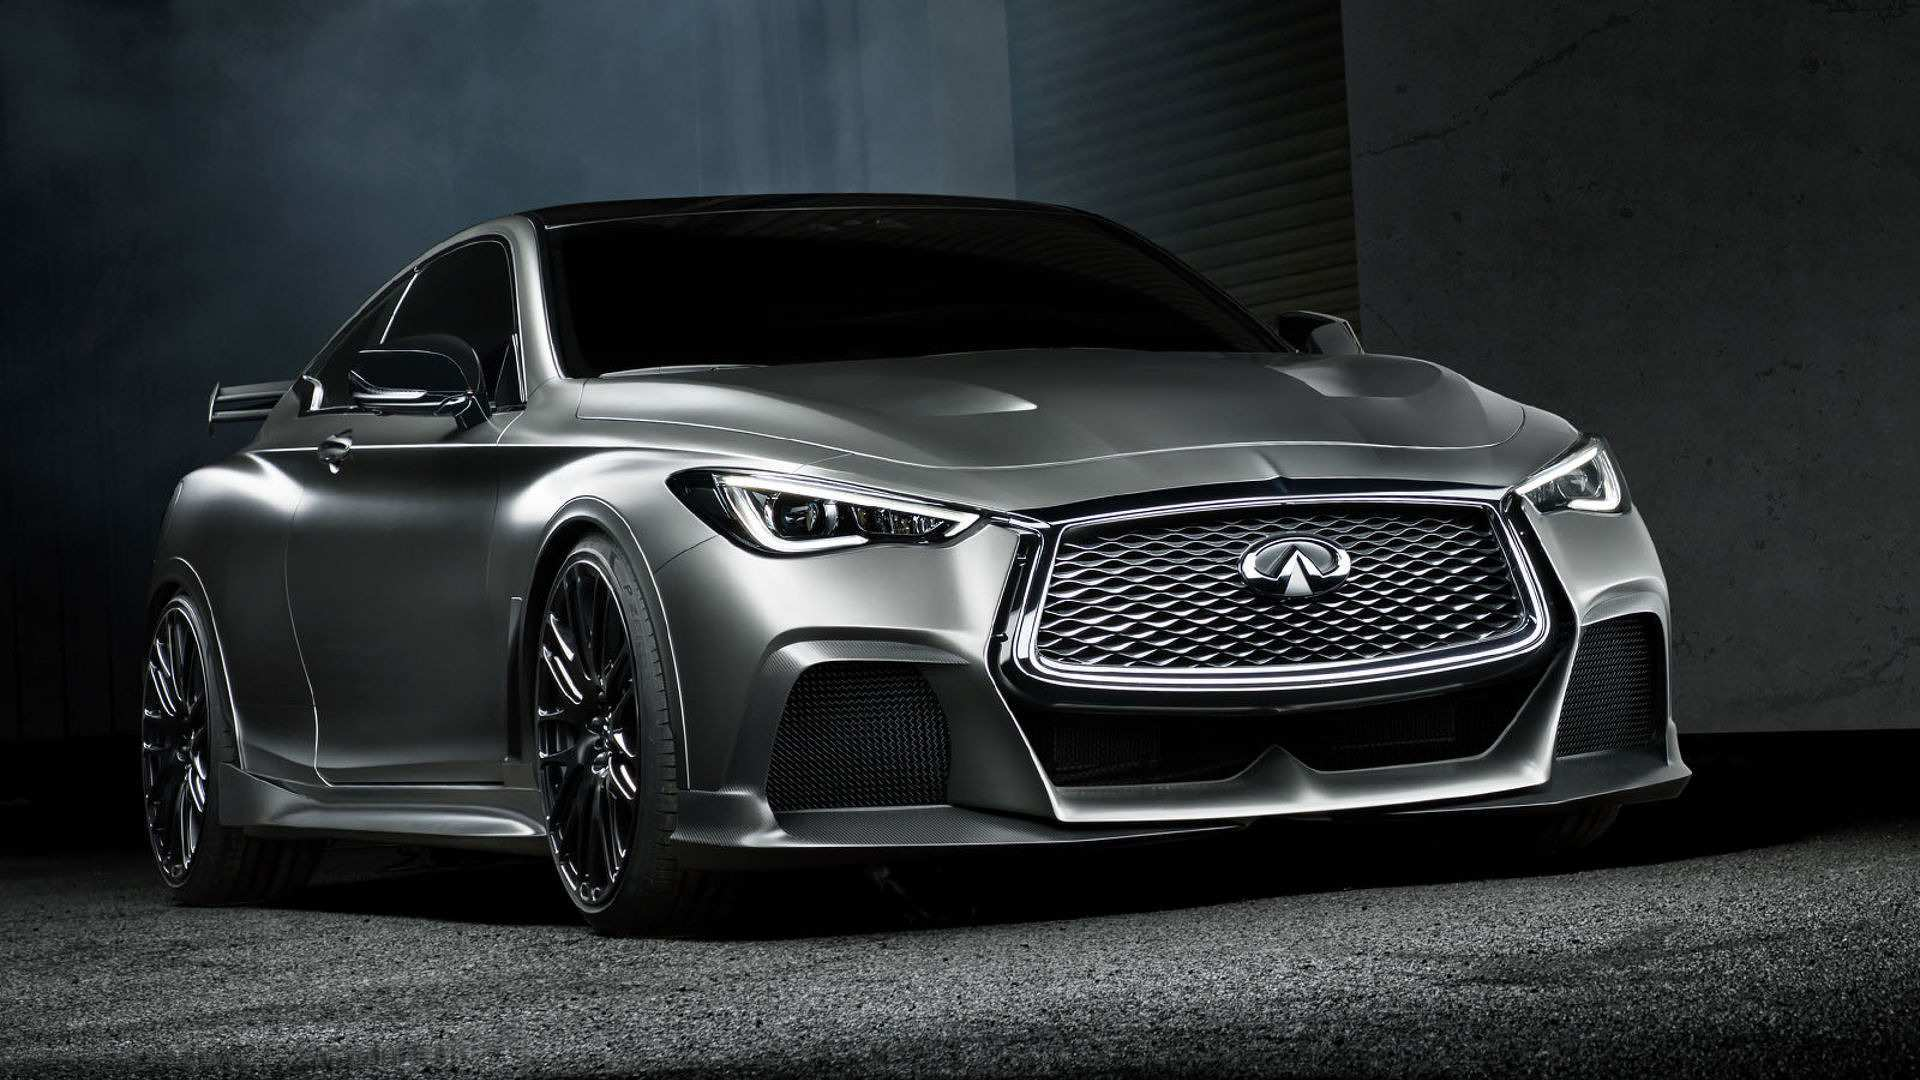 14 All New 2020 Infiniti Q60 Coupe Ipl Exterior And Interior